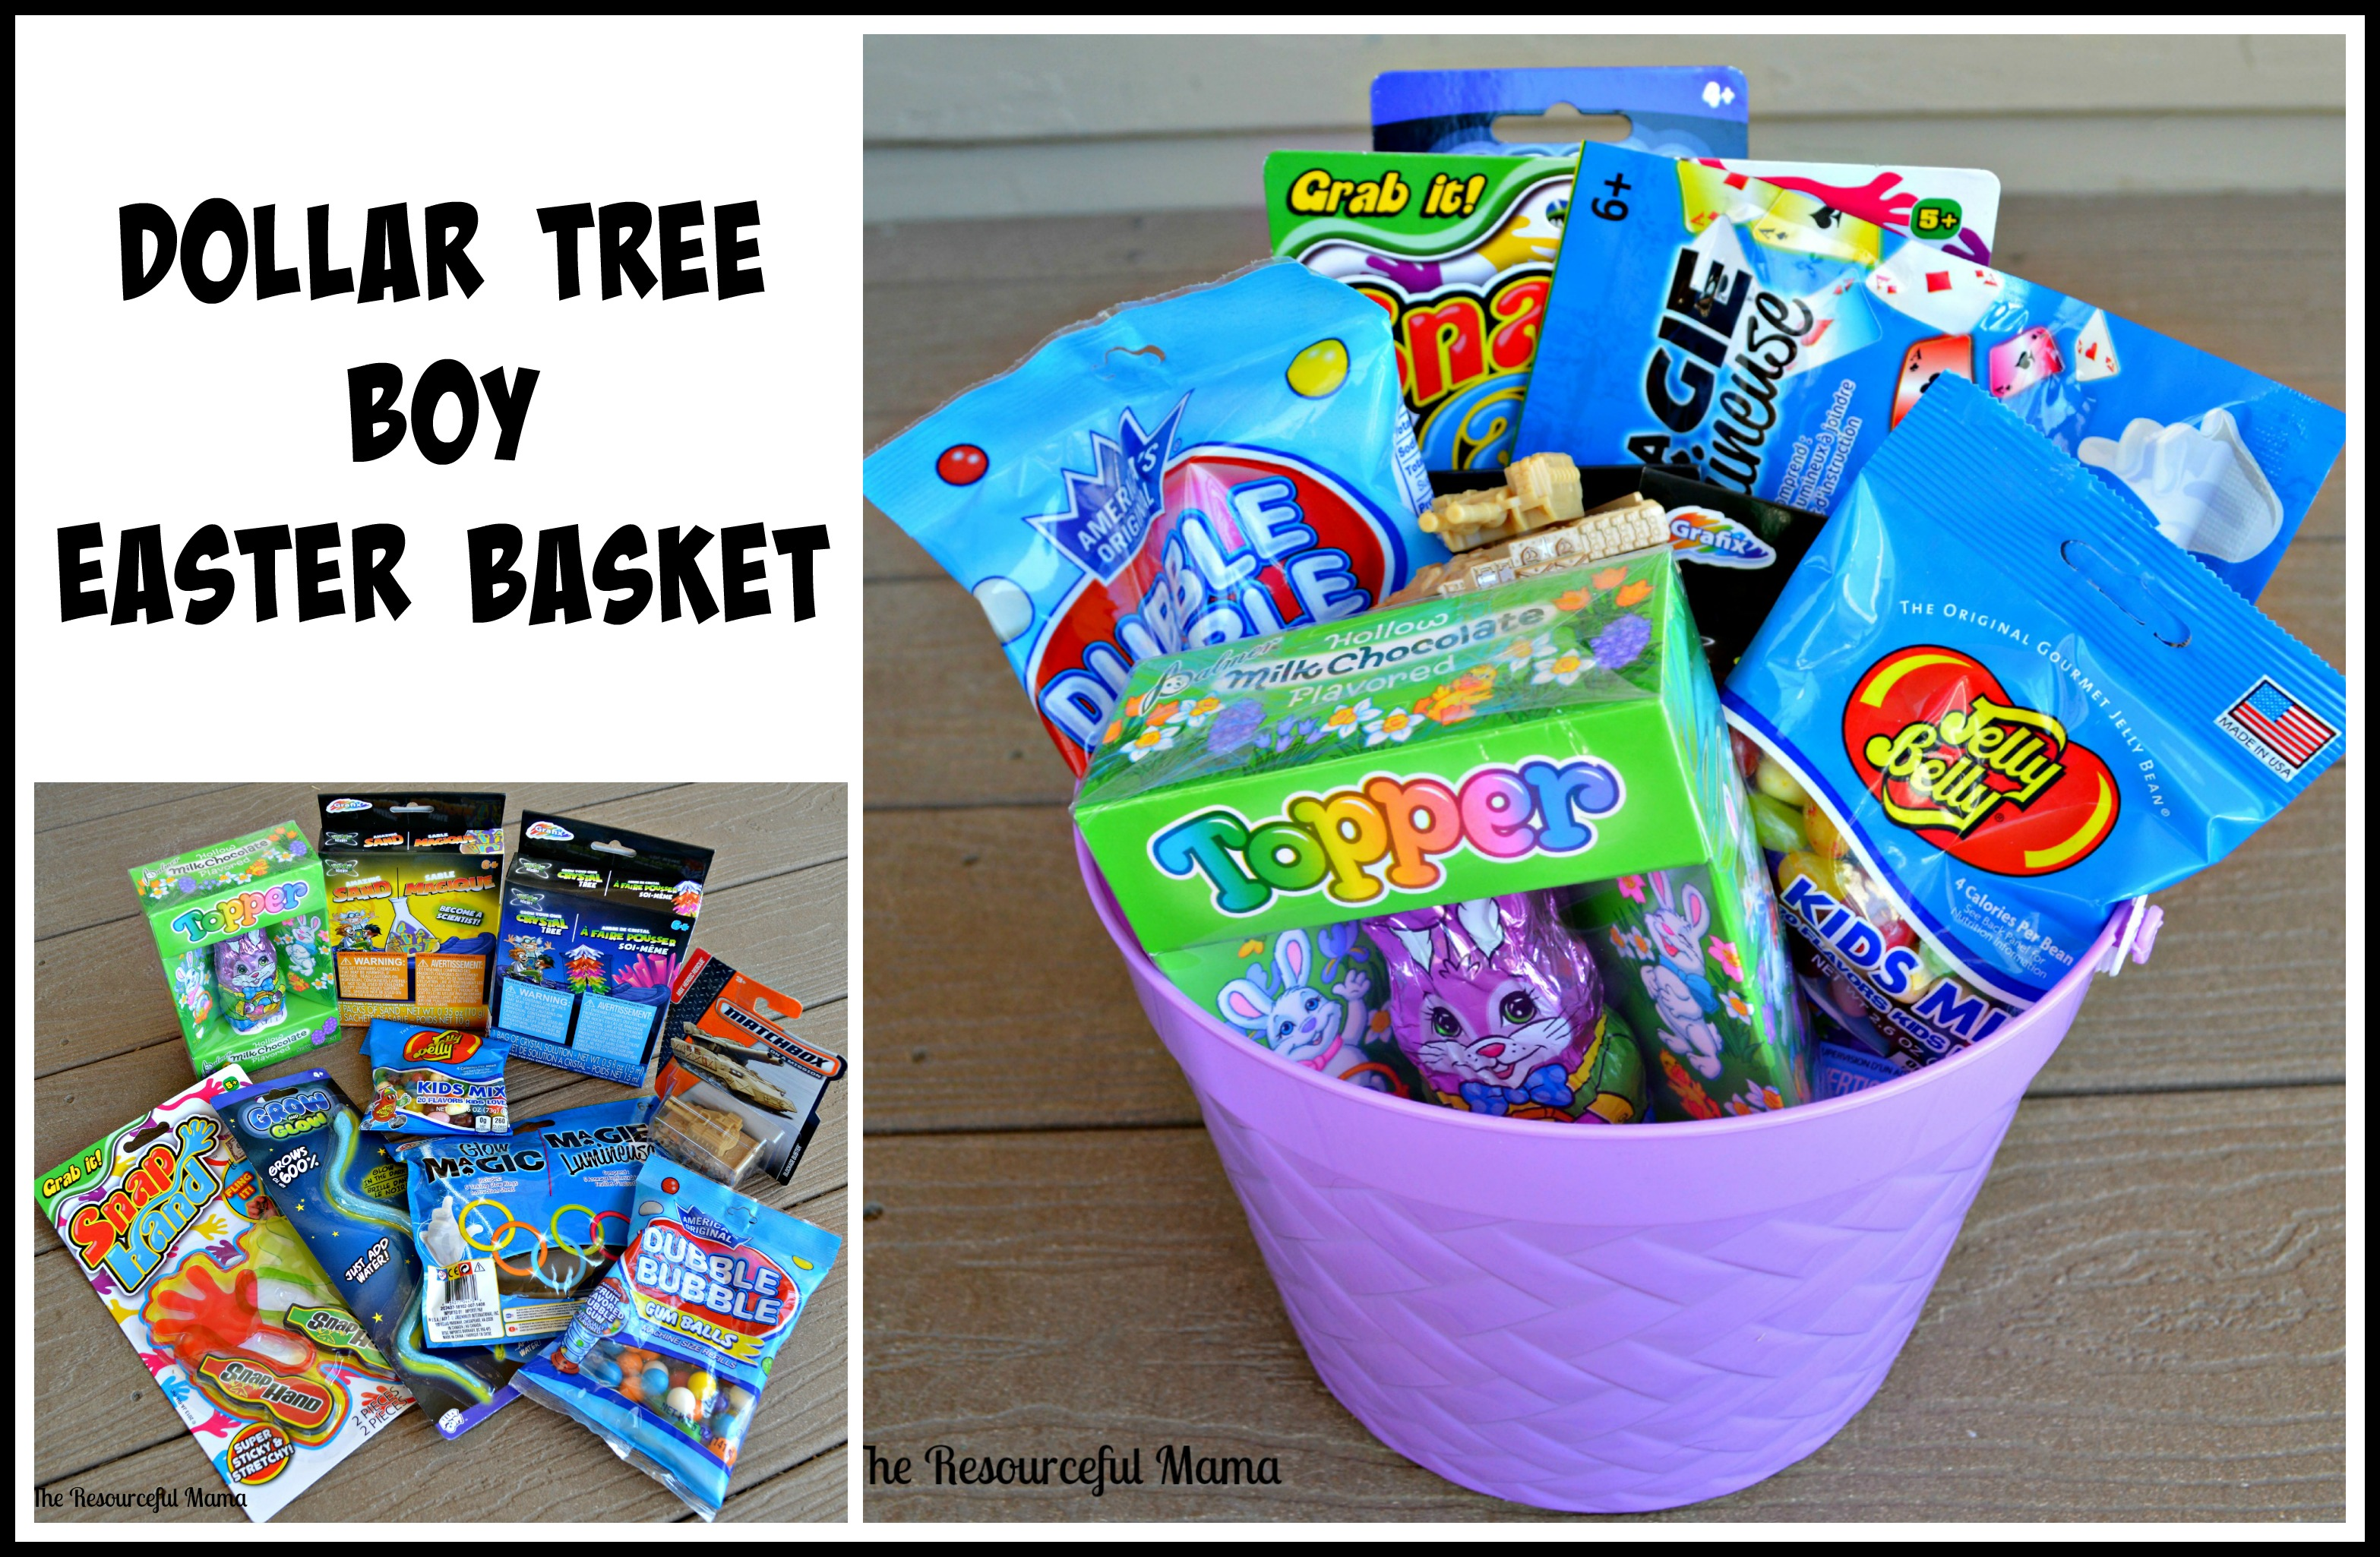 Dollar tree easter baskets the resourceful mama dollar tree easter basket boy negle Image collections